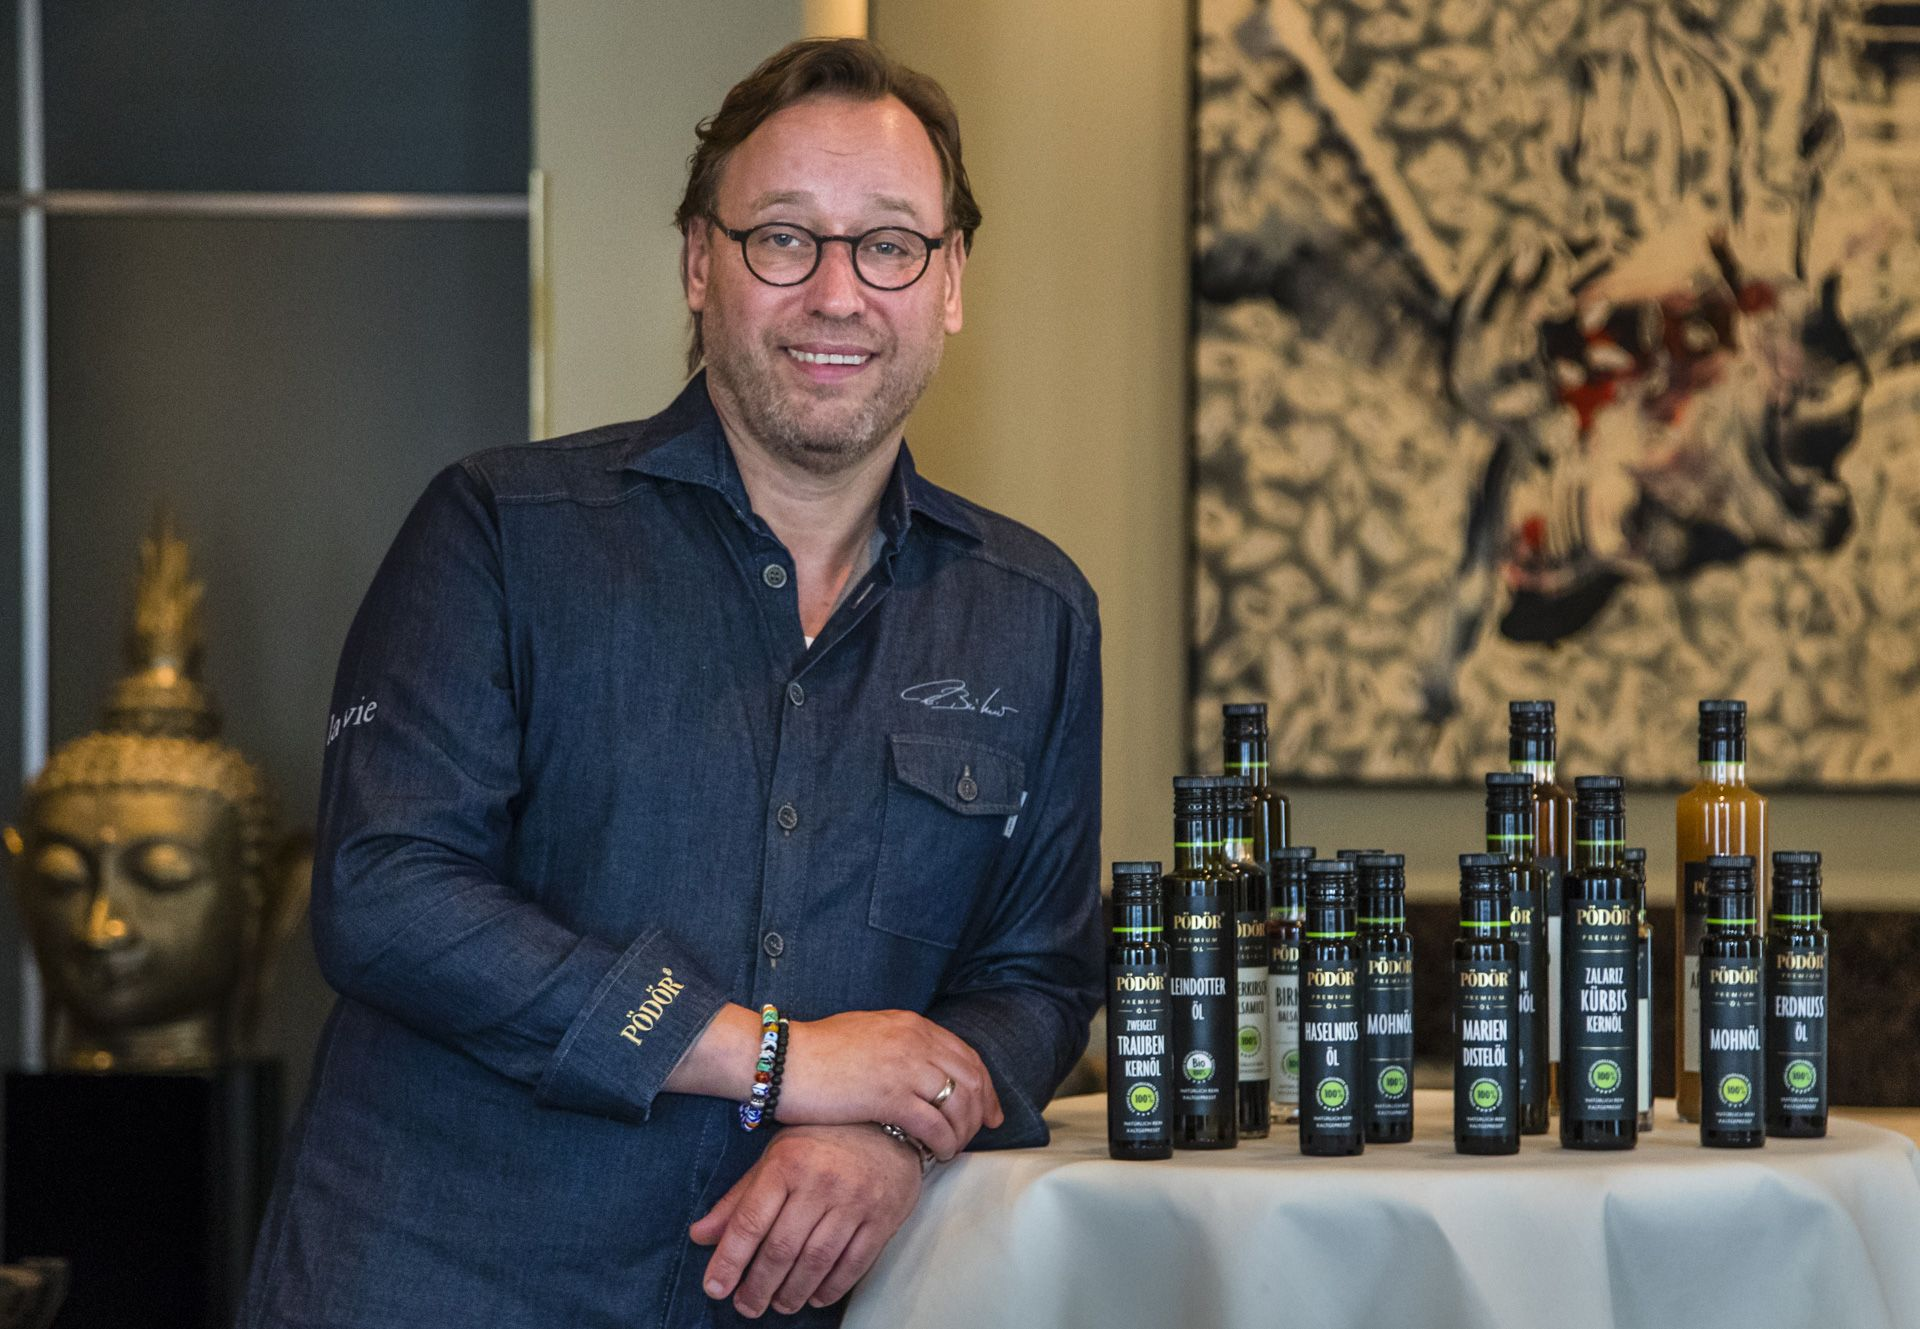 3-star chef Thomas Bühner in the restaurant la vie in Osnabrück with a selection of Pödör oils and vinegars.